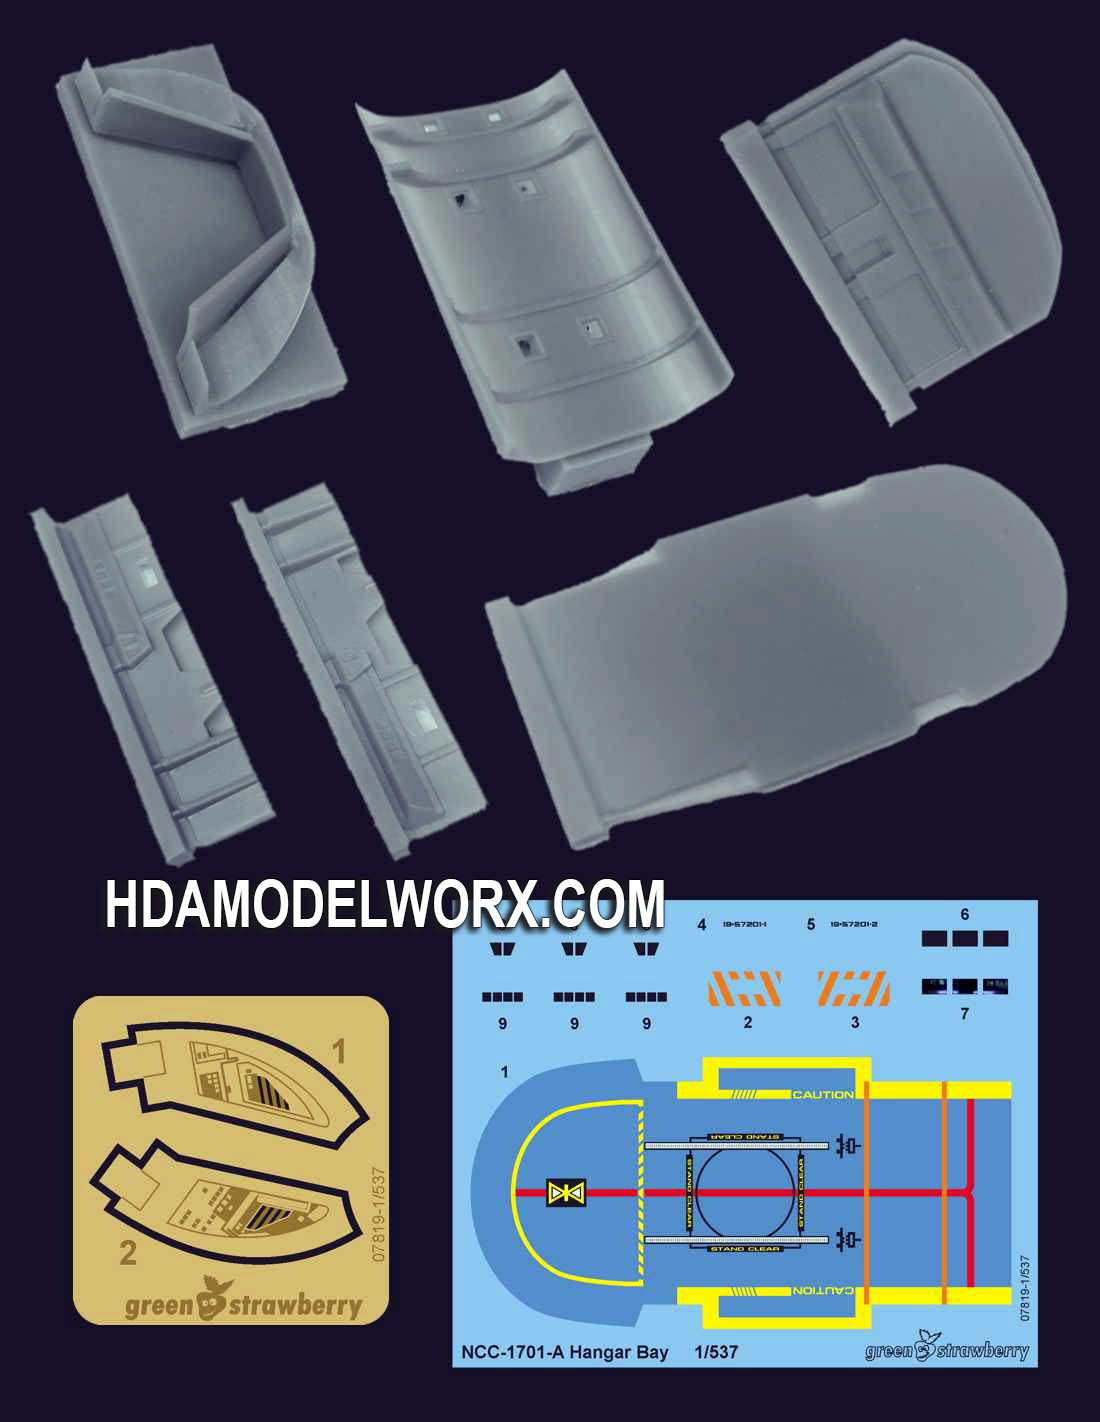 Welcome to HDAmodelworx com! - Your source for modeling